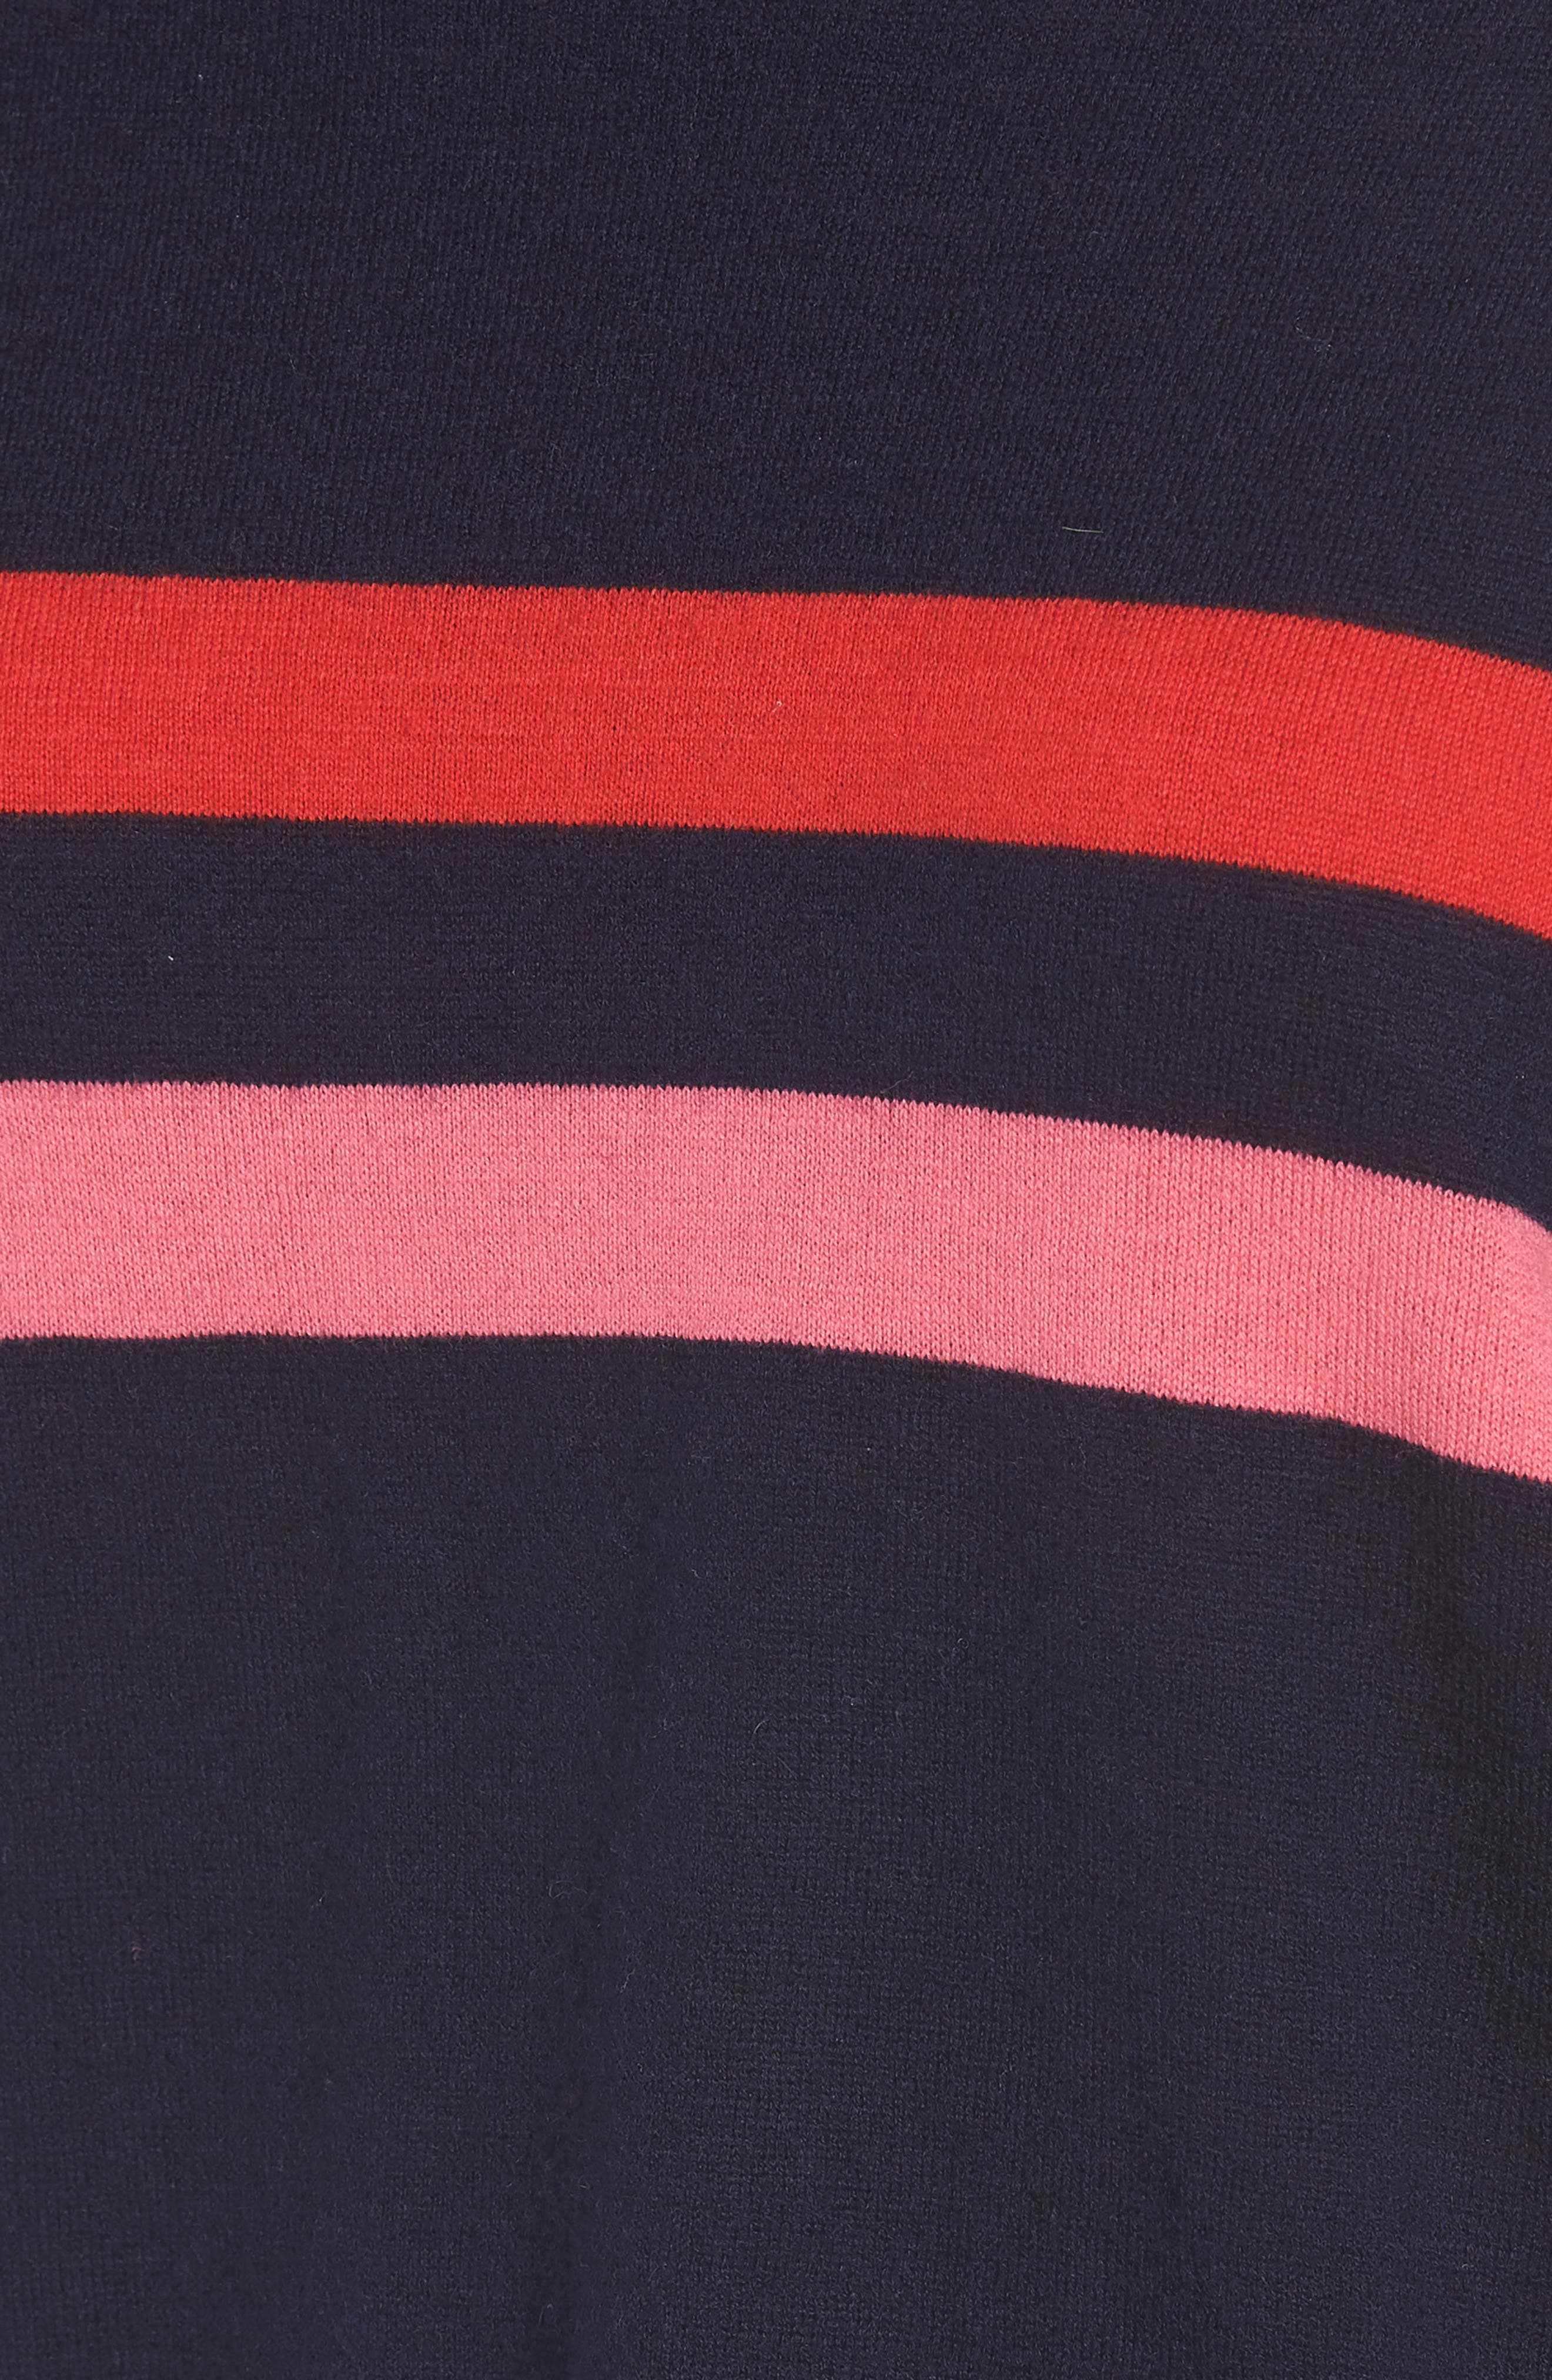 Stripe Wool & Cashmere Sweater,                             Alternate thumbnail 6, color,